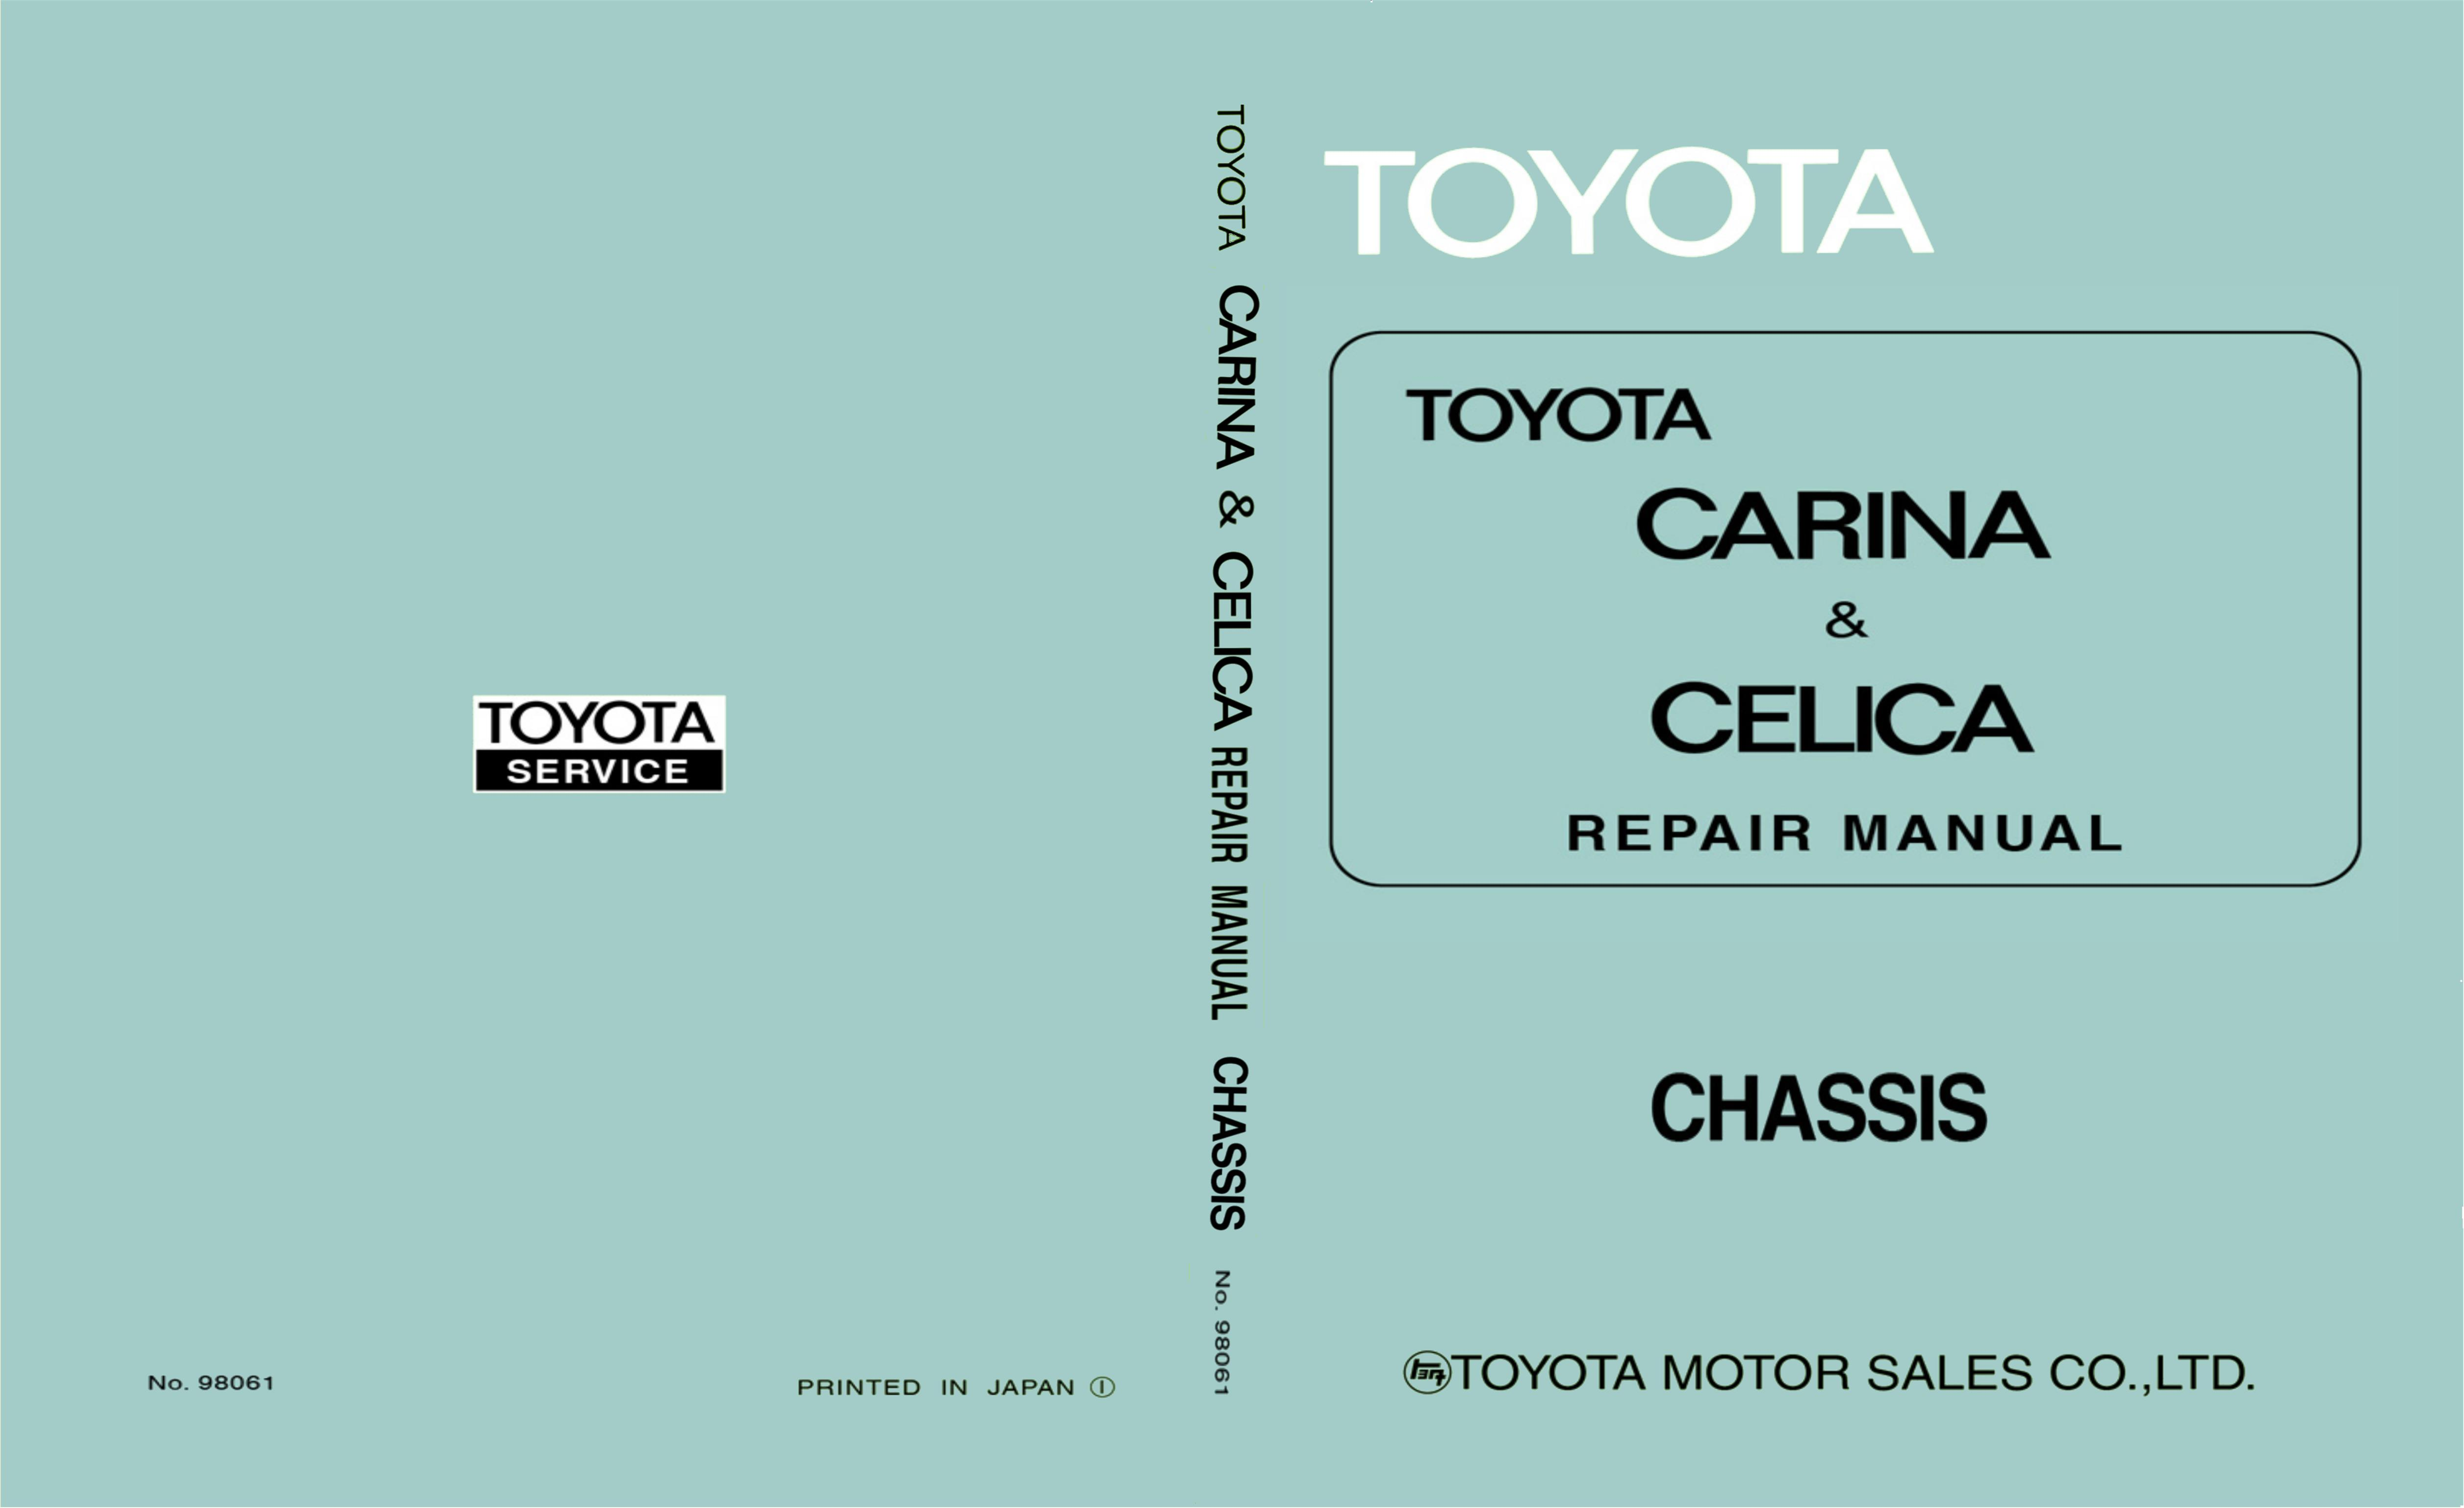 1971 Toyota Celica Carina Chassis Manual cover image